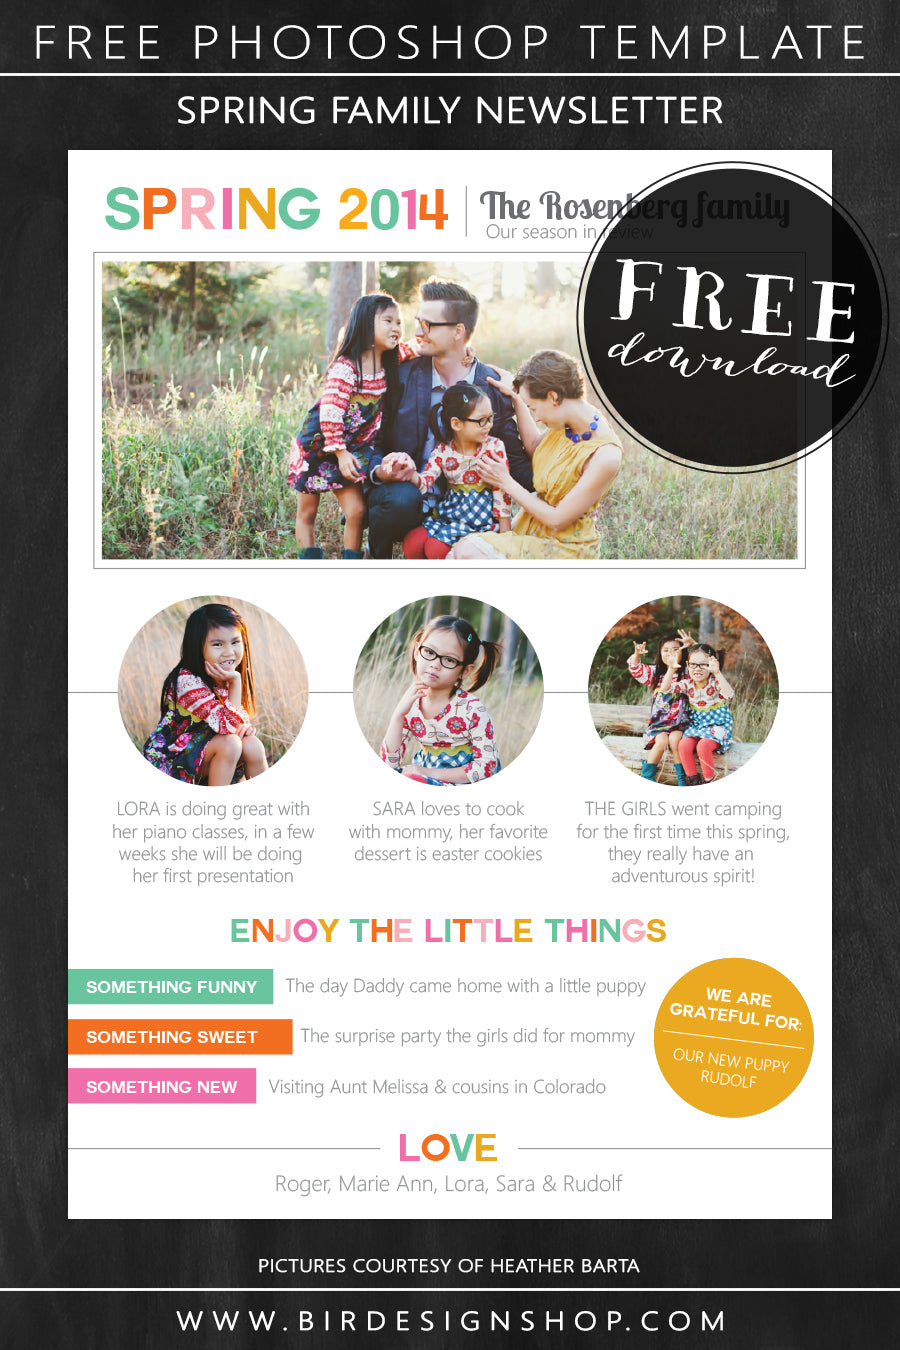 Spring family newsletter - free photoshop template – Birdesign